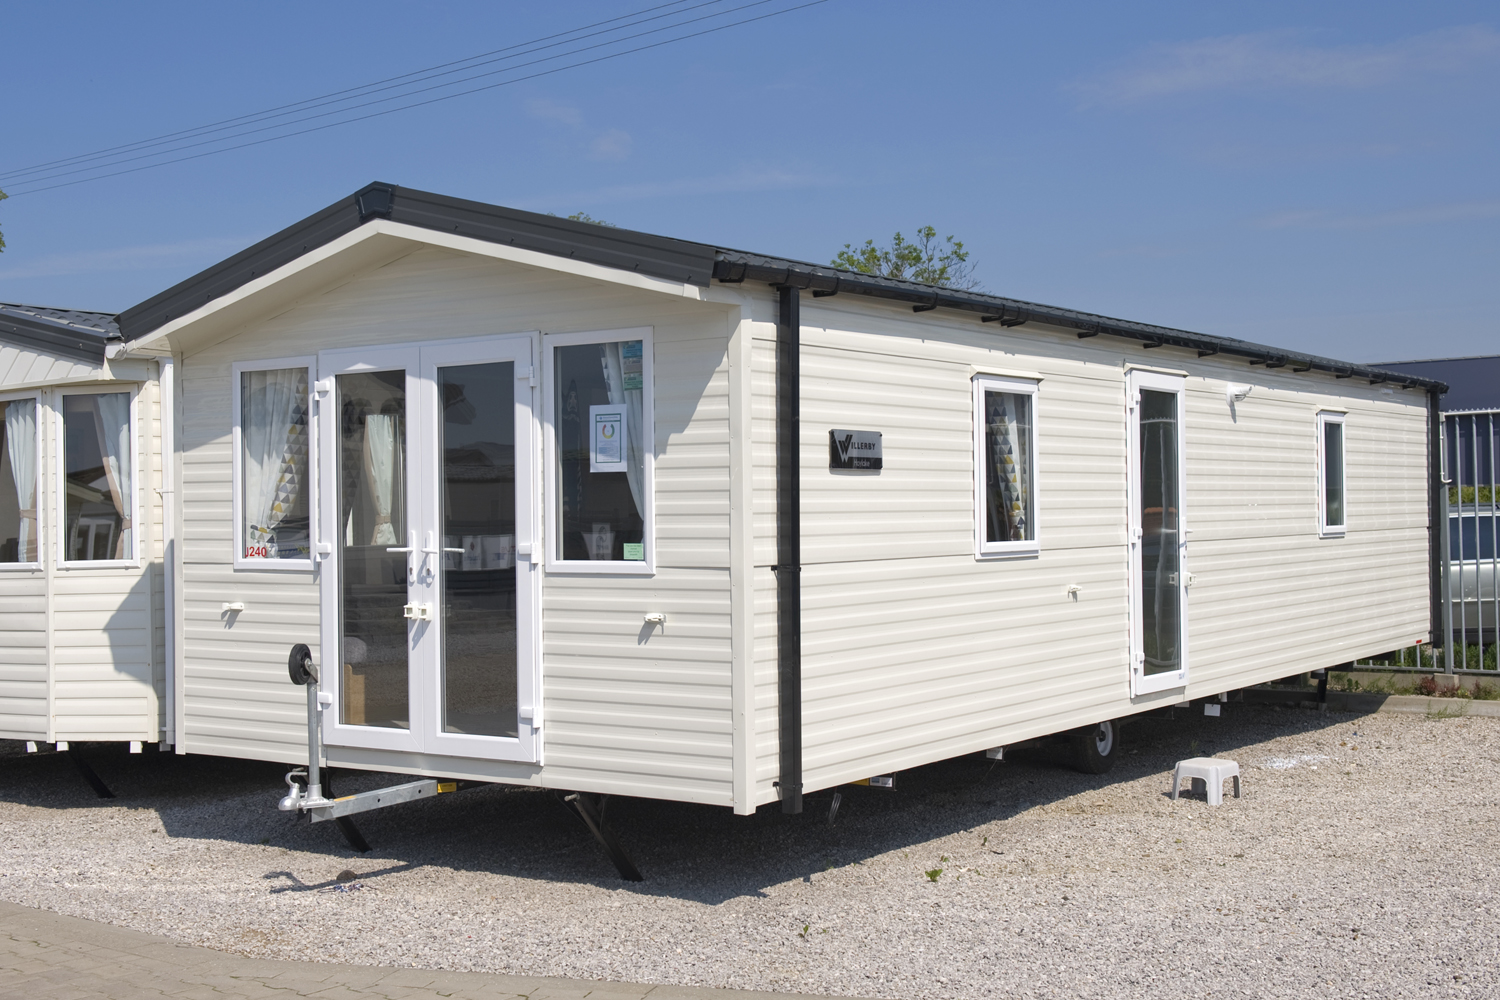 WILLERBY HOYLAKE J240